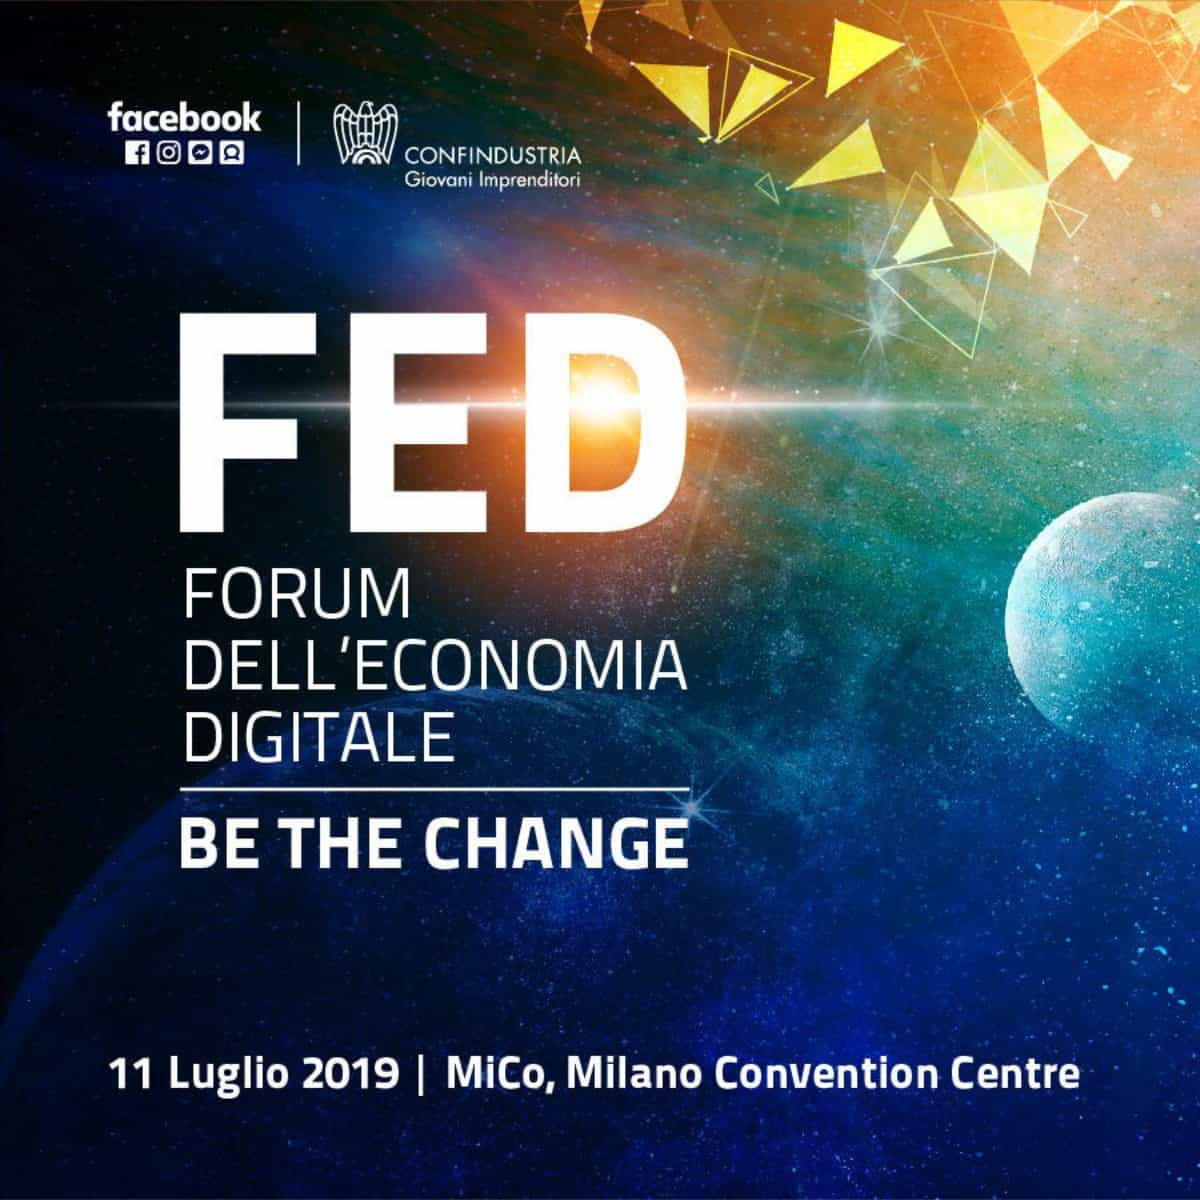 Fed forum dell'economia digitale